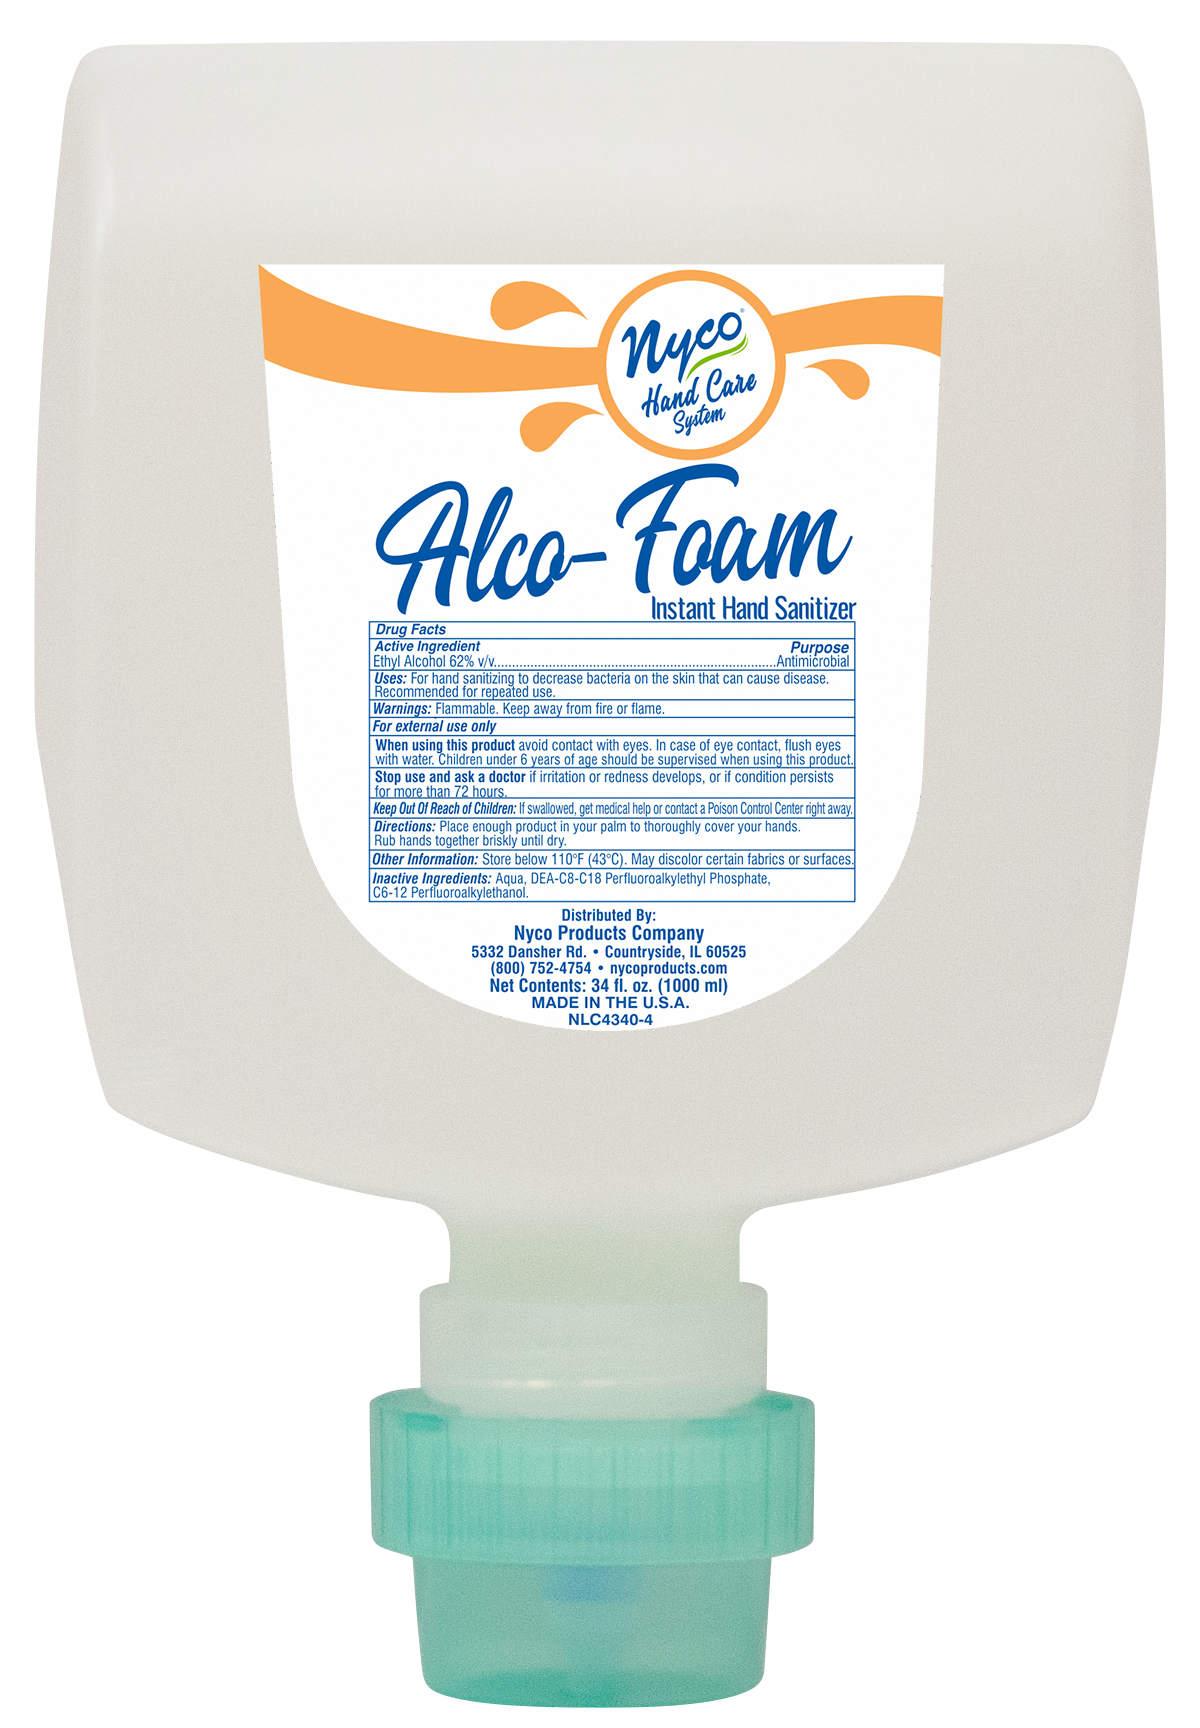 Nyco NLC4340-4 hand sanitizer